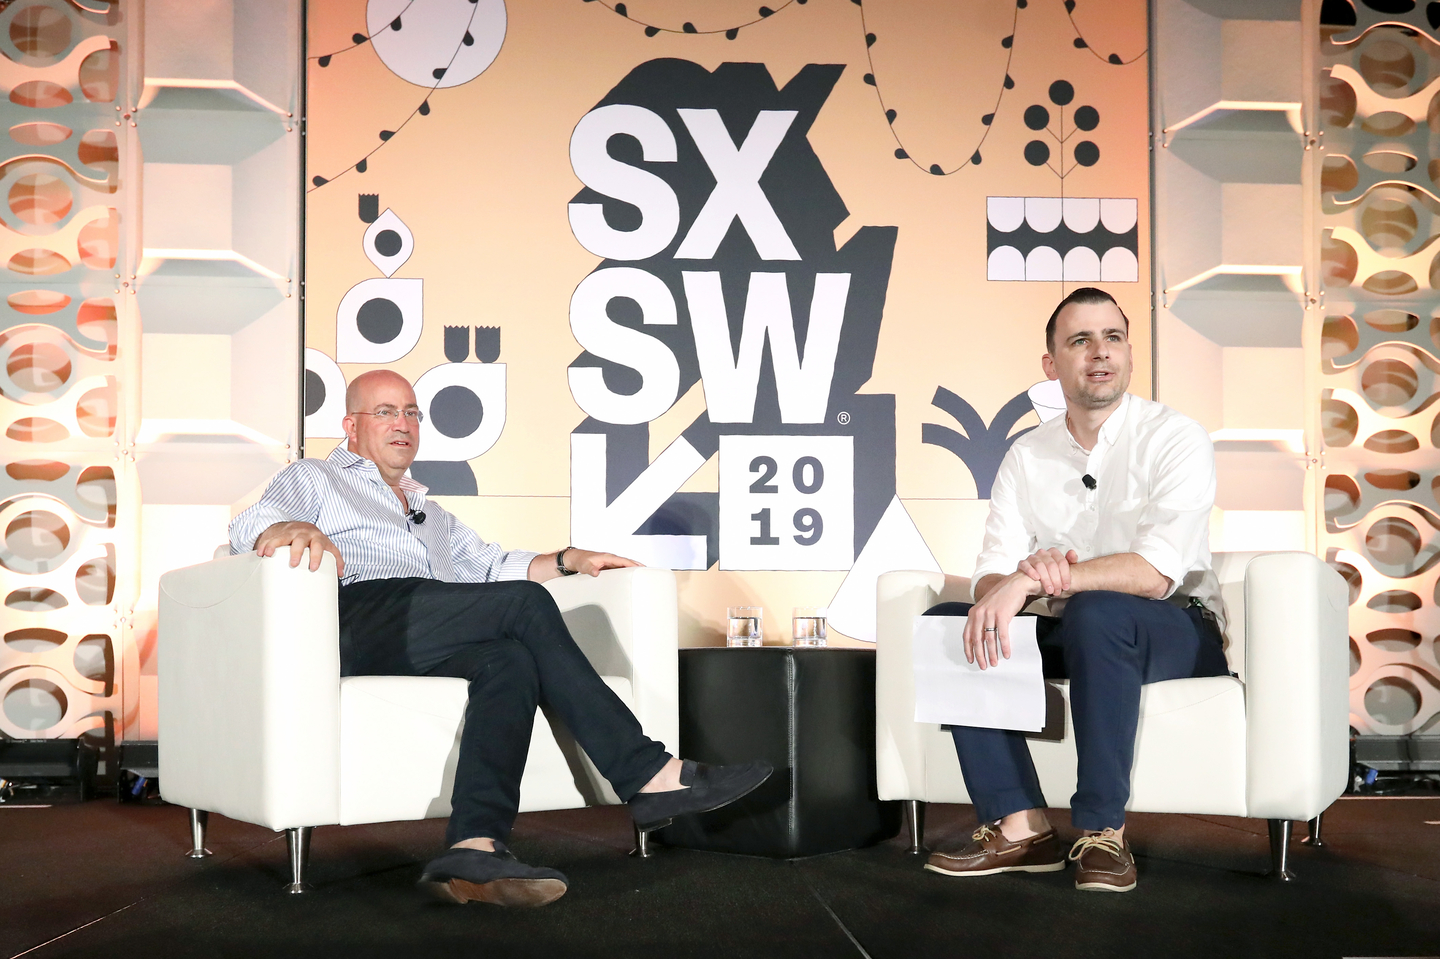 (L-R) Jeff Zucker and Joe Pompeo at their Featured Session - Photo by Diego Donamaria/Getty Images for SXSW